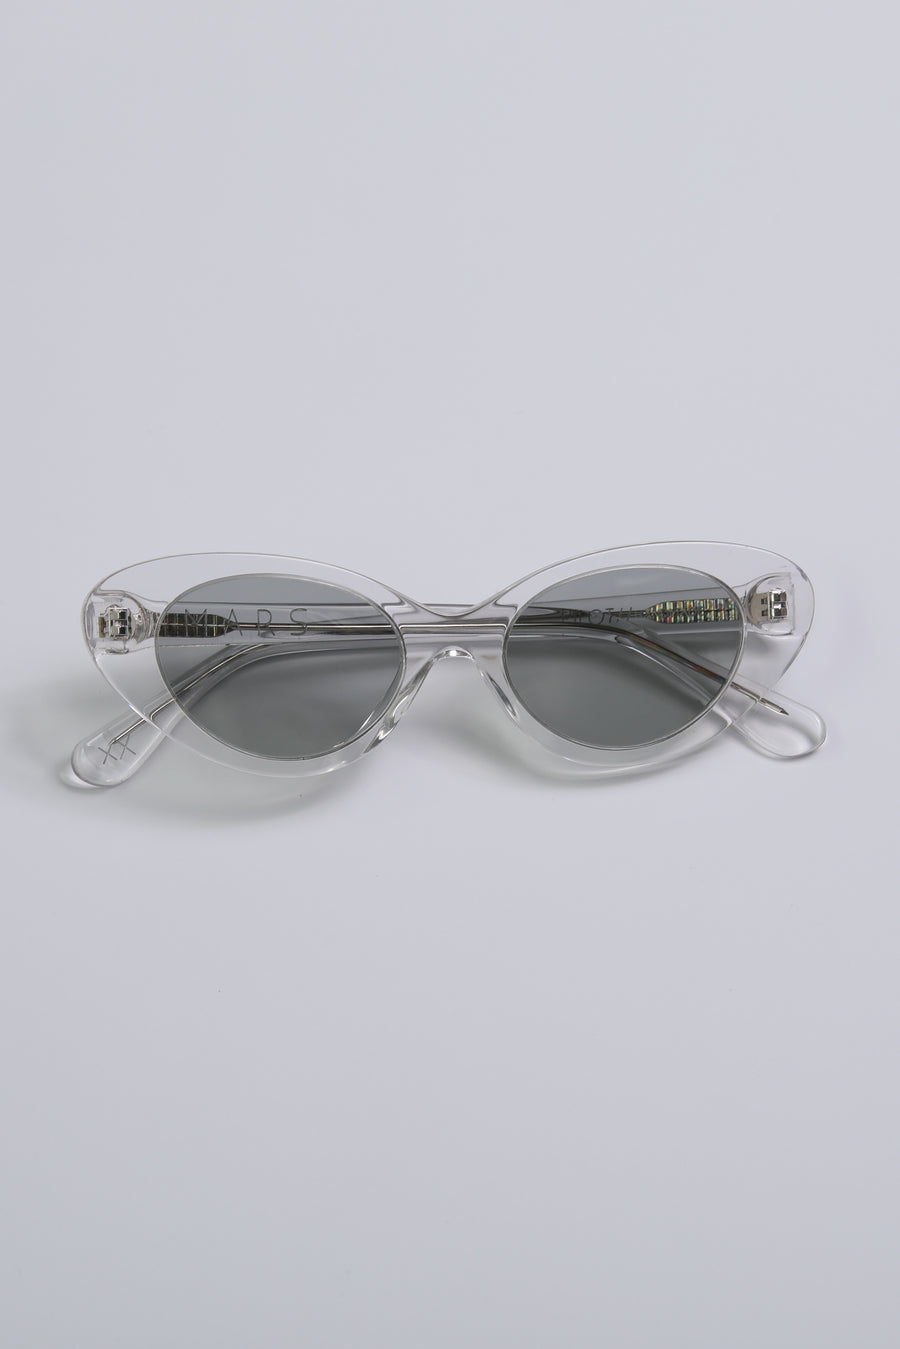 PILOT SUNGLASSES - Crystal